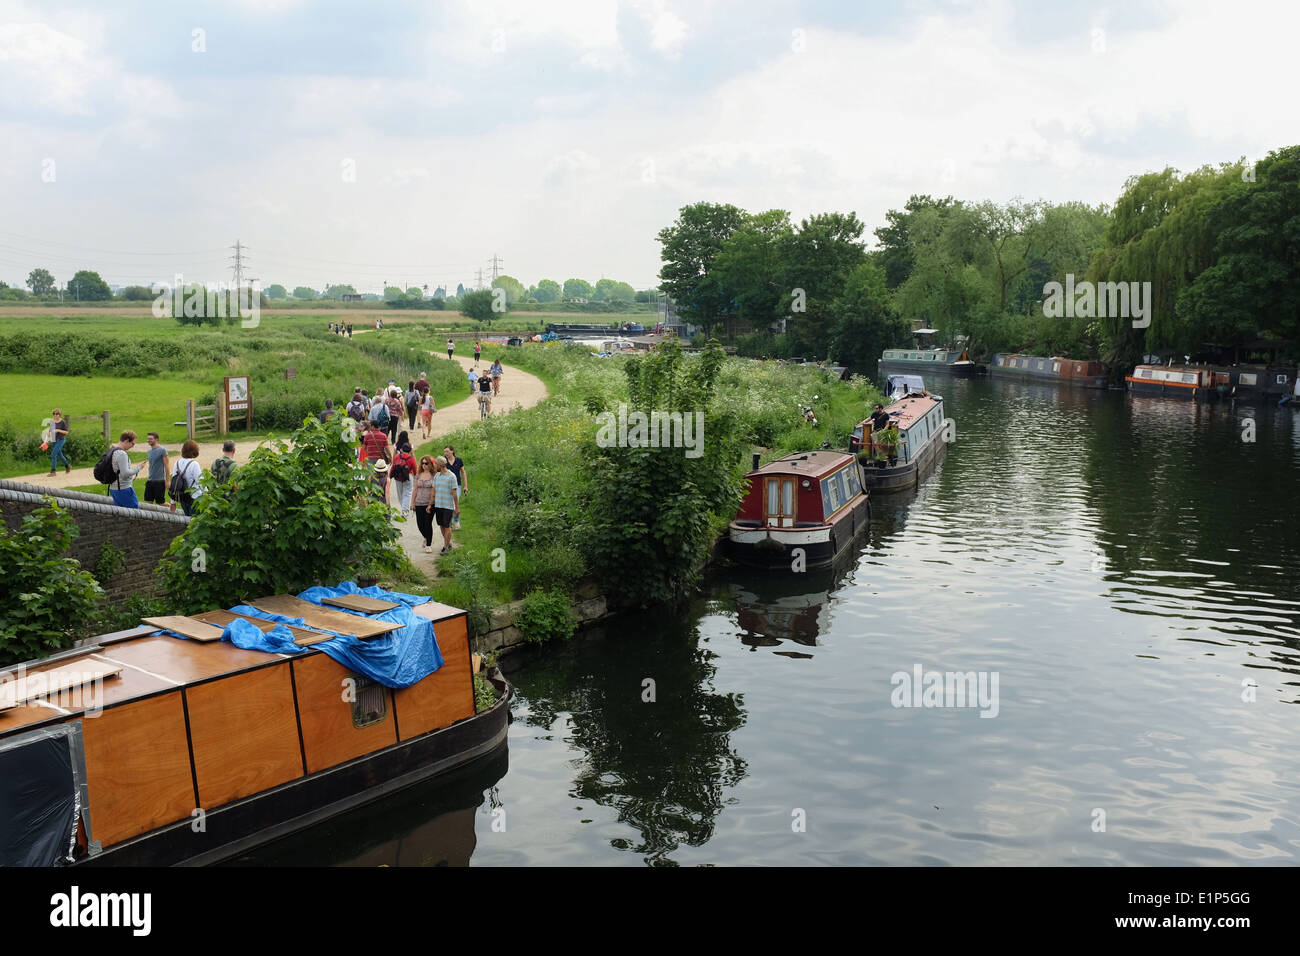 River Lee (or Lea), part of Lee Valley Park, in east London, UK. - Stock Image